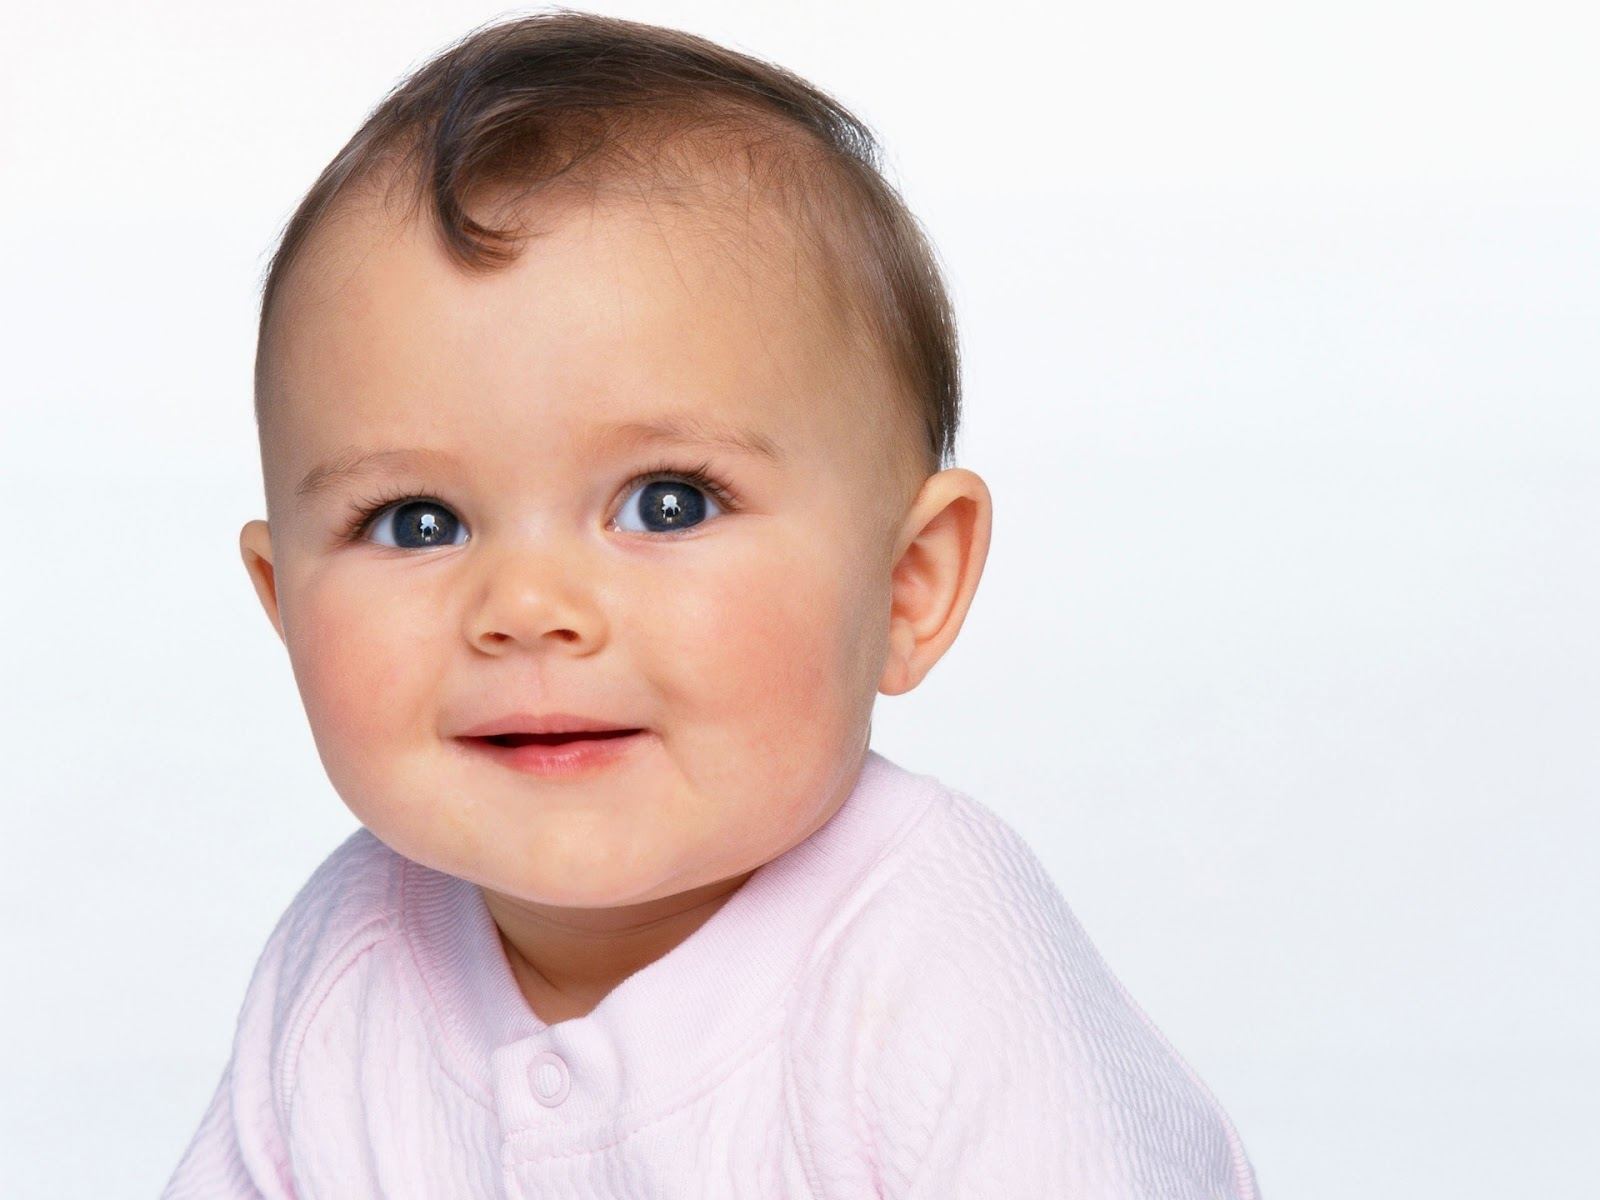 Cute Baby Girl Pictures Wallpapers: Fascinating Articles And Cool Stuff: Cute Babies Wallpapers